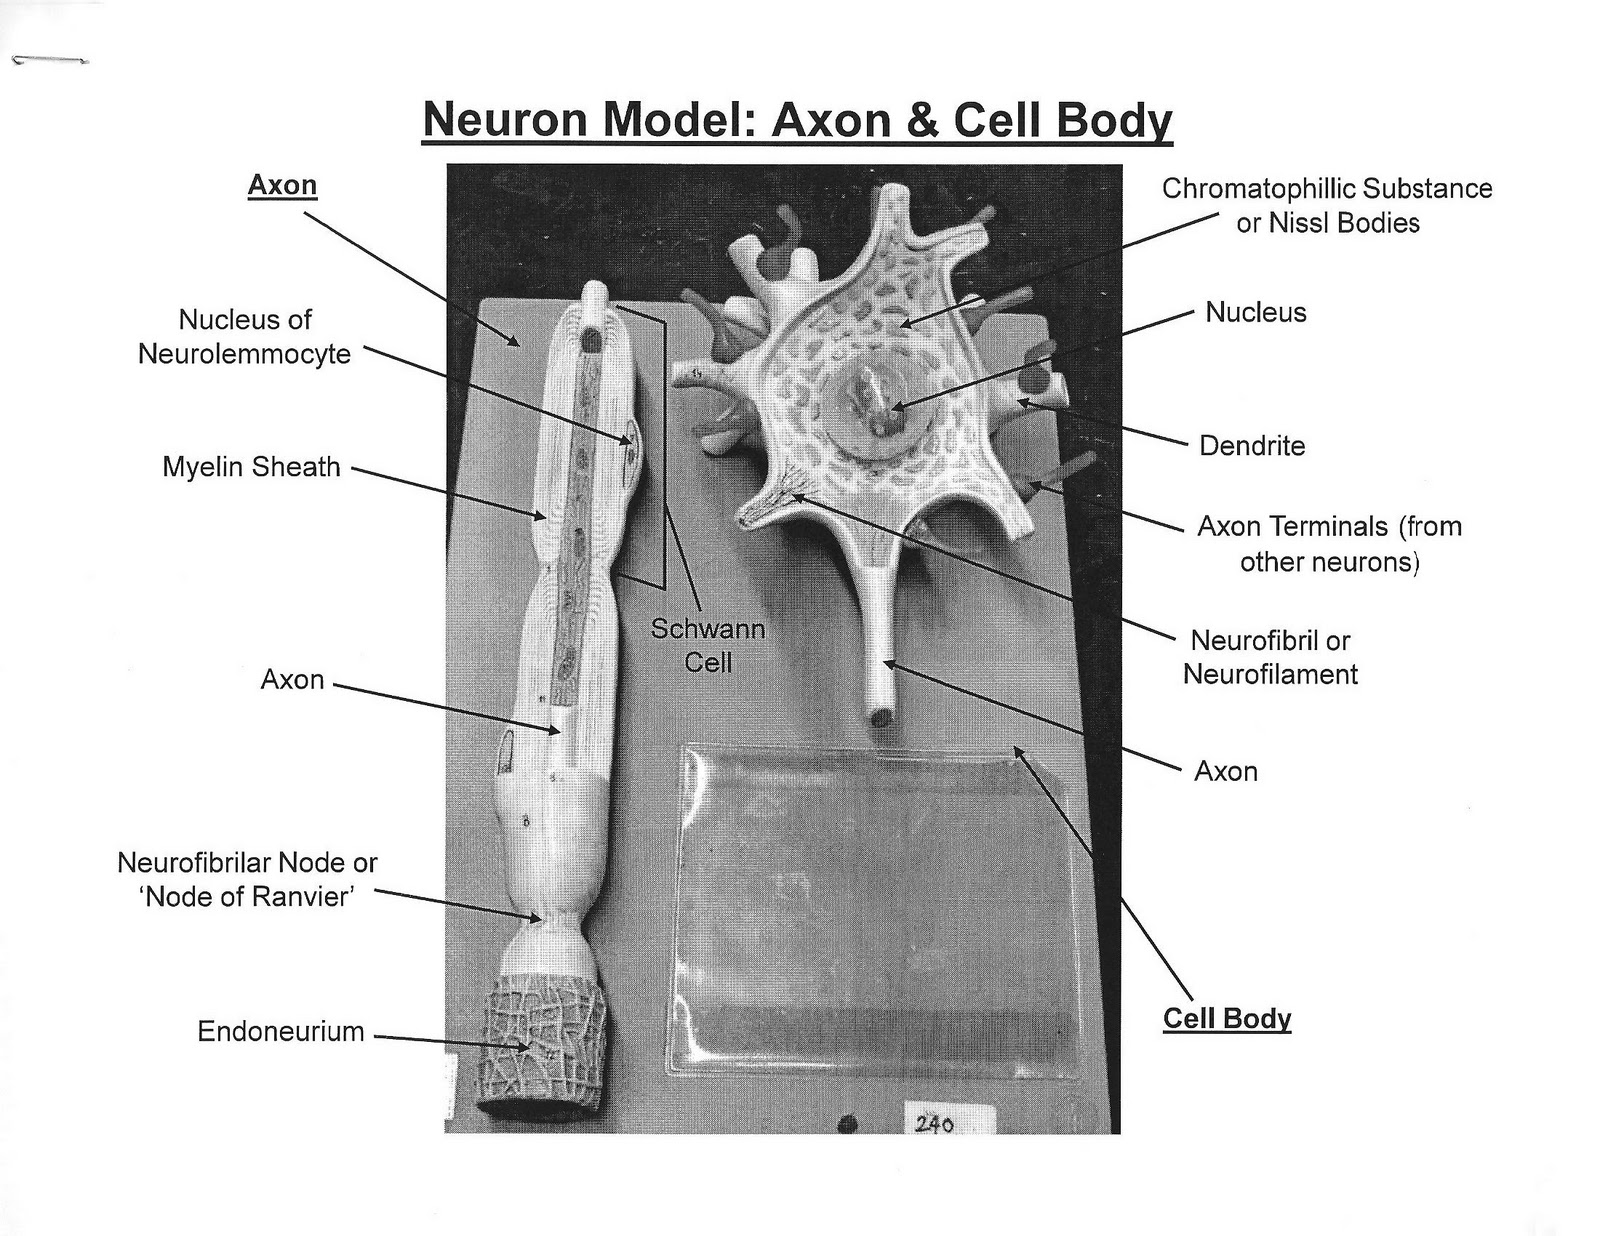 complete neuron cell diagram renault clio wiring anatomy and physiology i bis 240 model axon